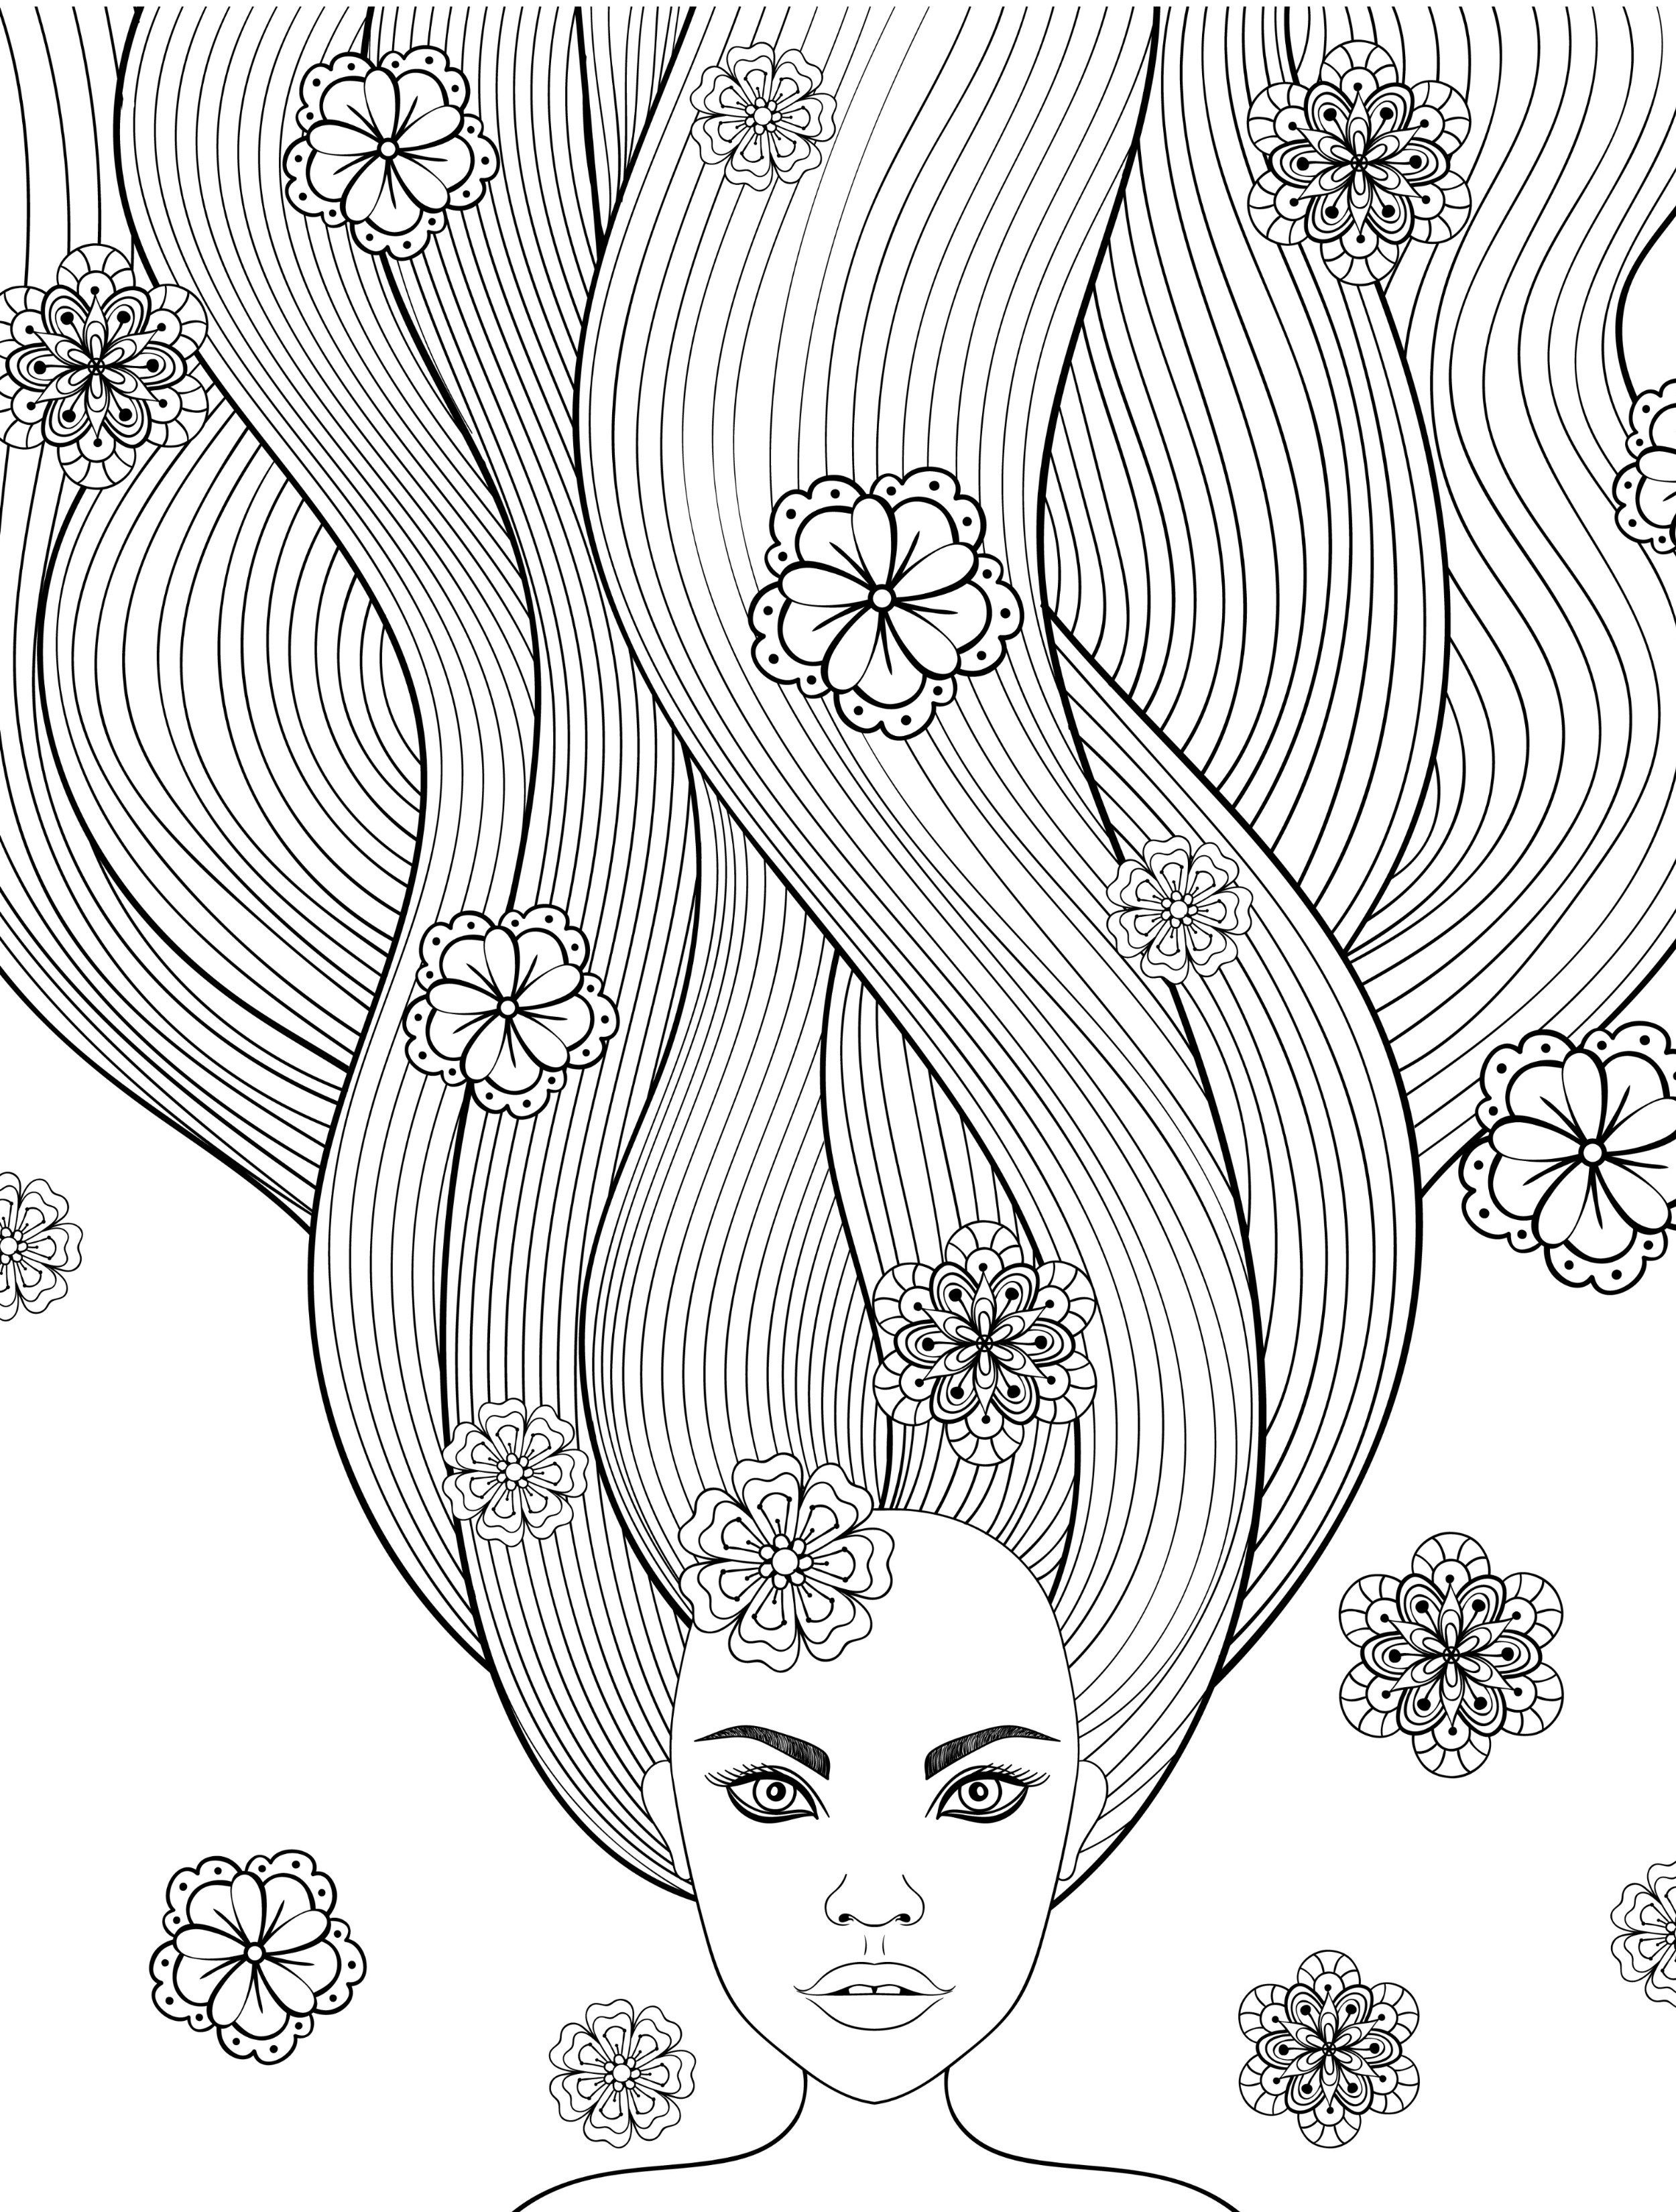 10 crazy hair adult coloring pages page 8 of 12 - Hair Coloring Pages